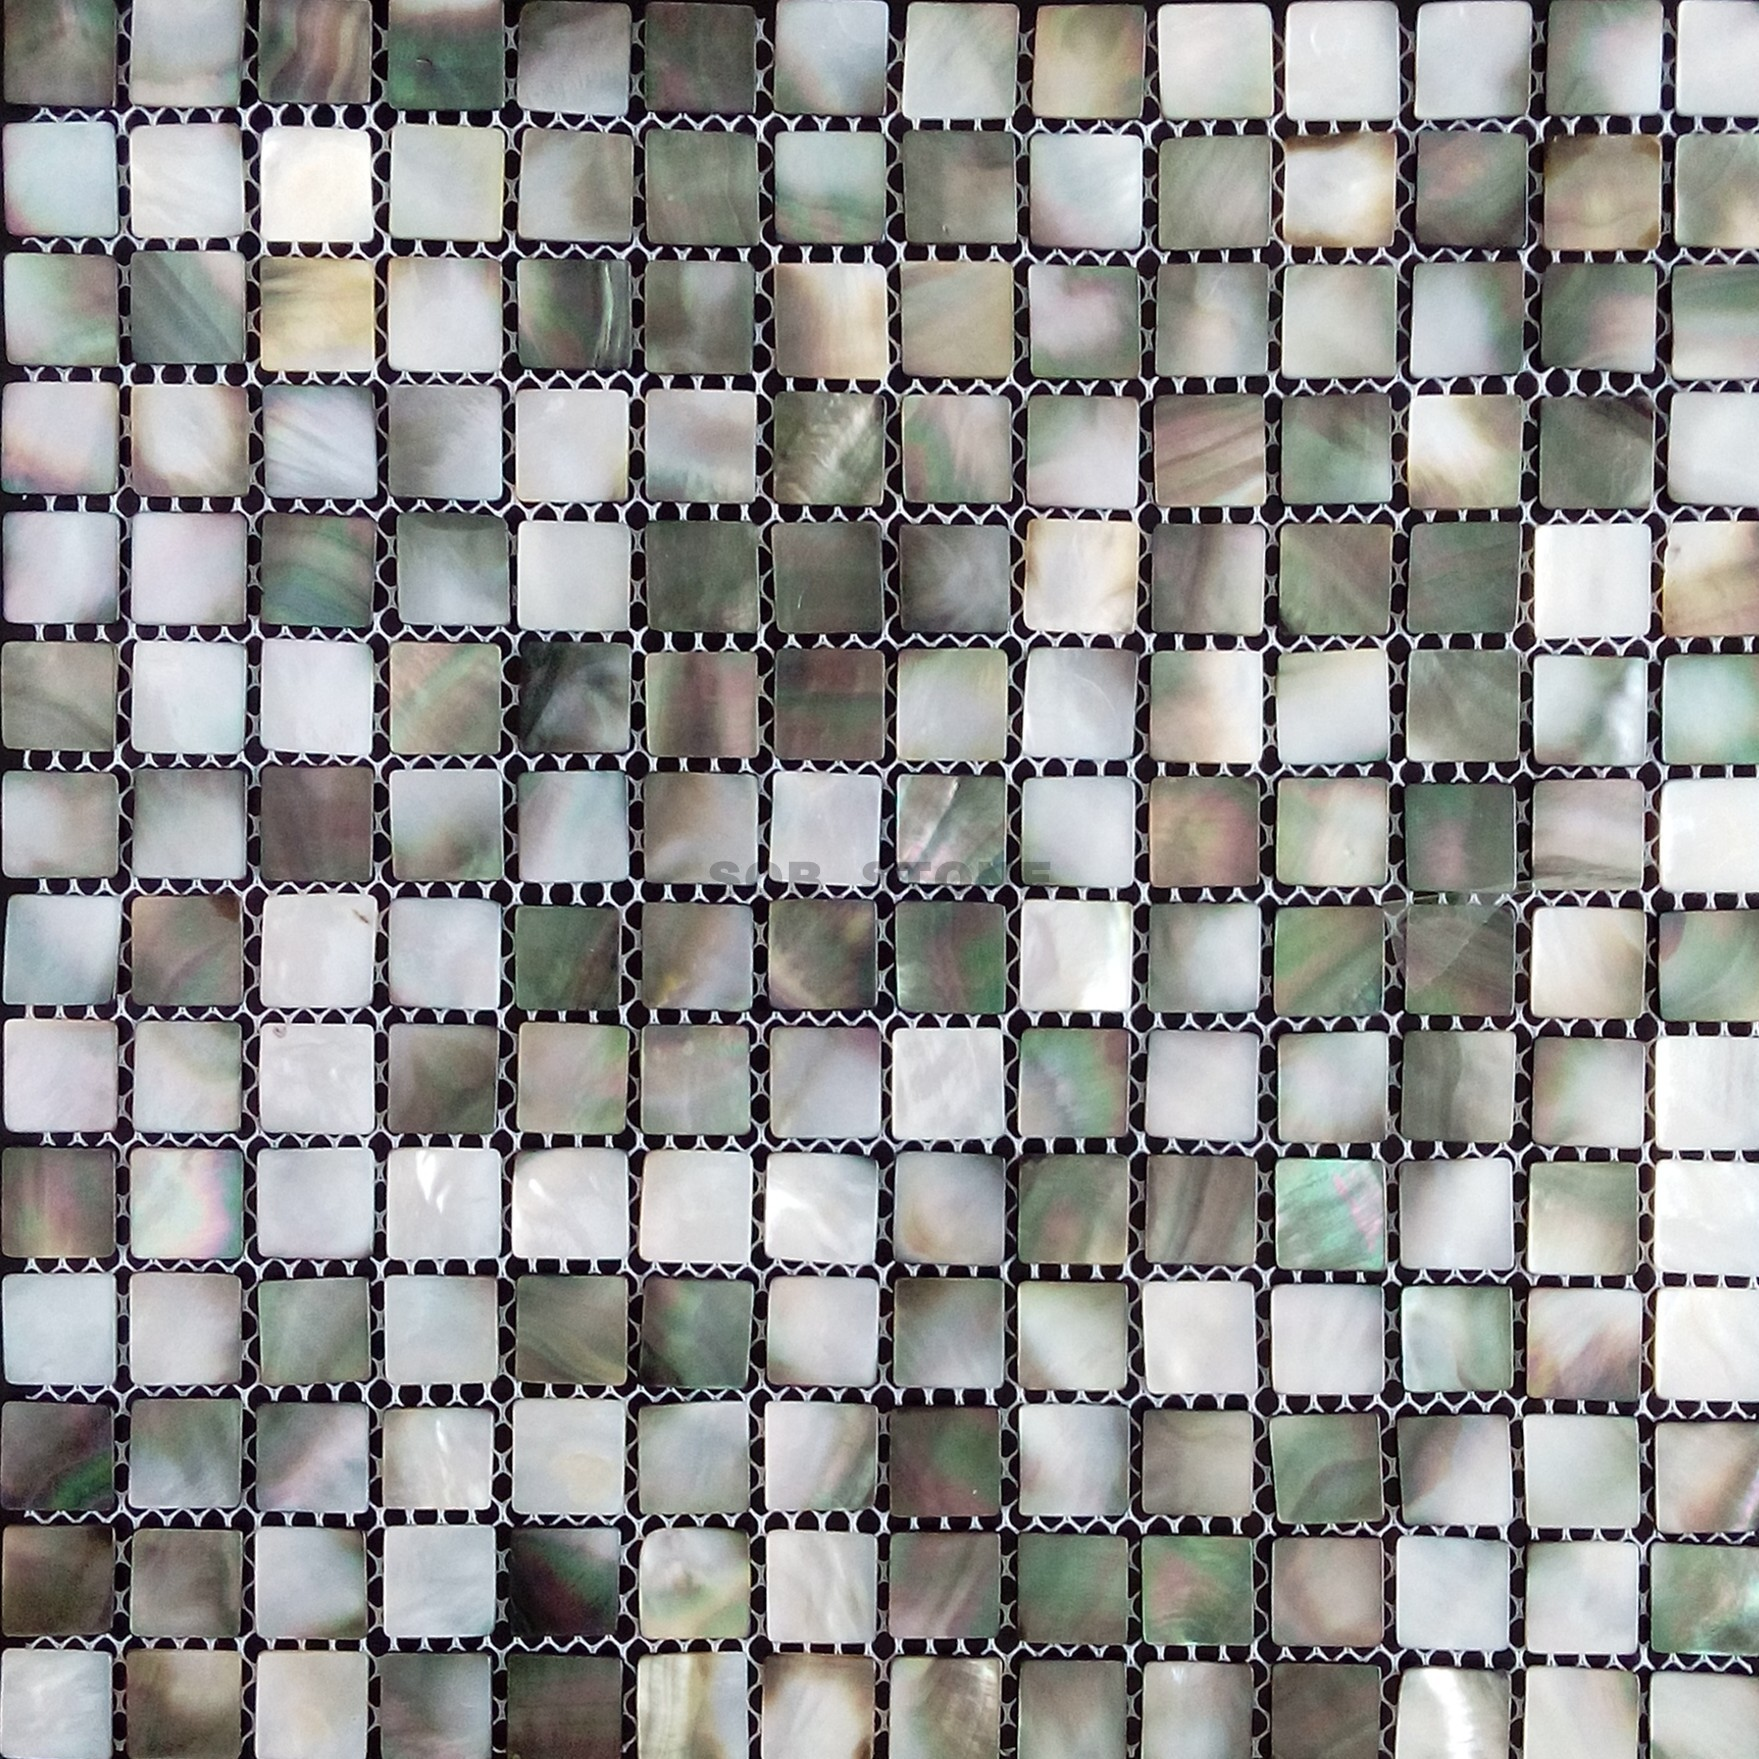 Black Butterfly Mother of Pearl Mosaic Tiles Seashell